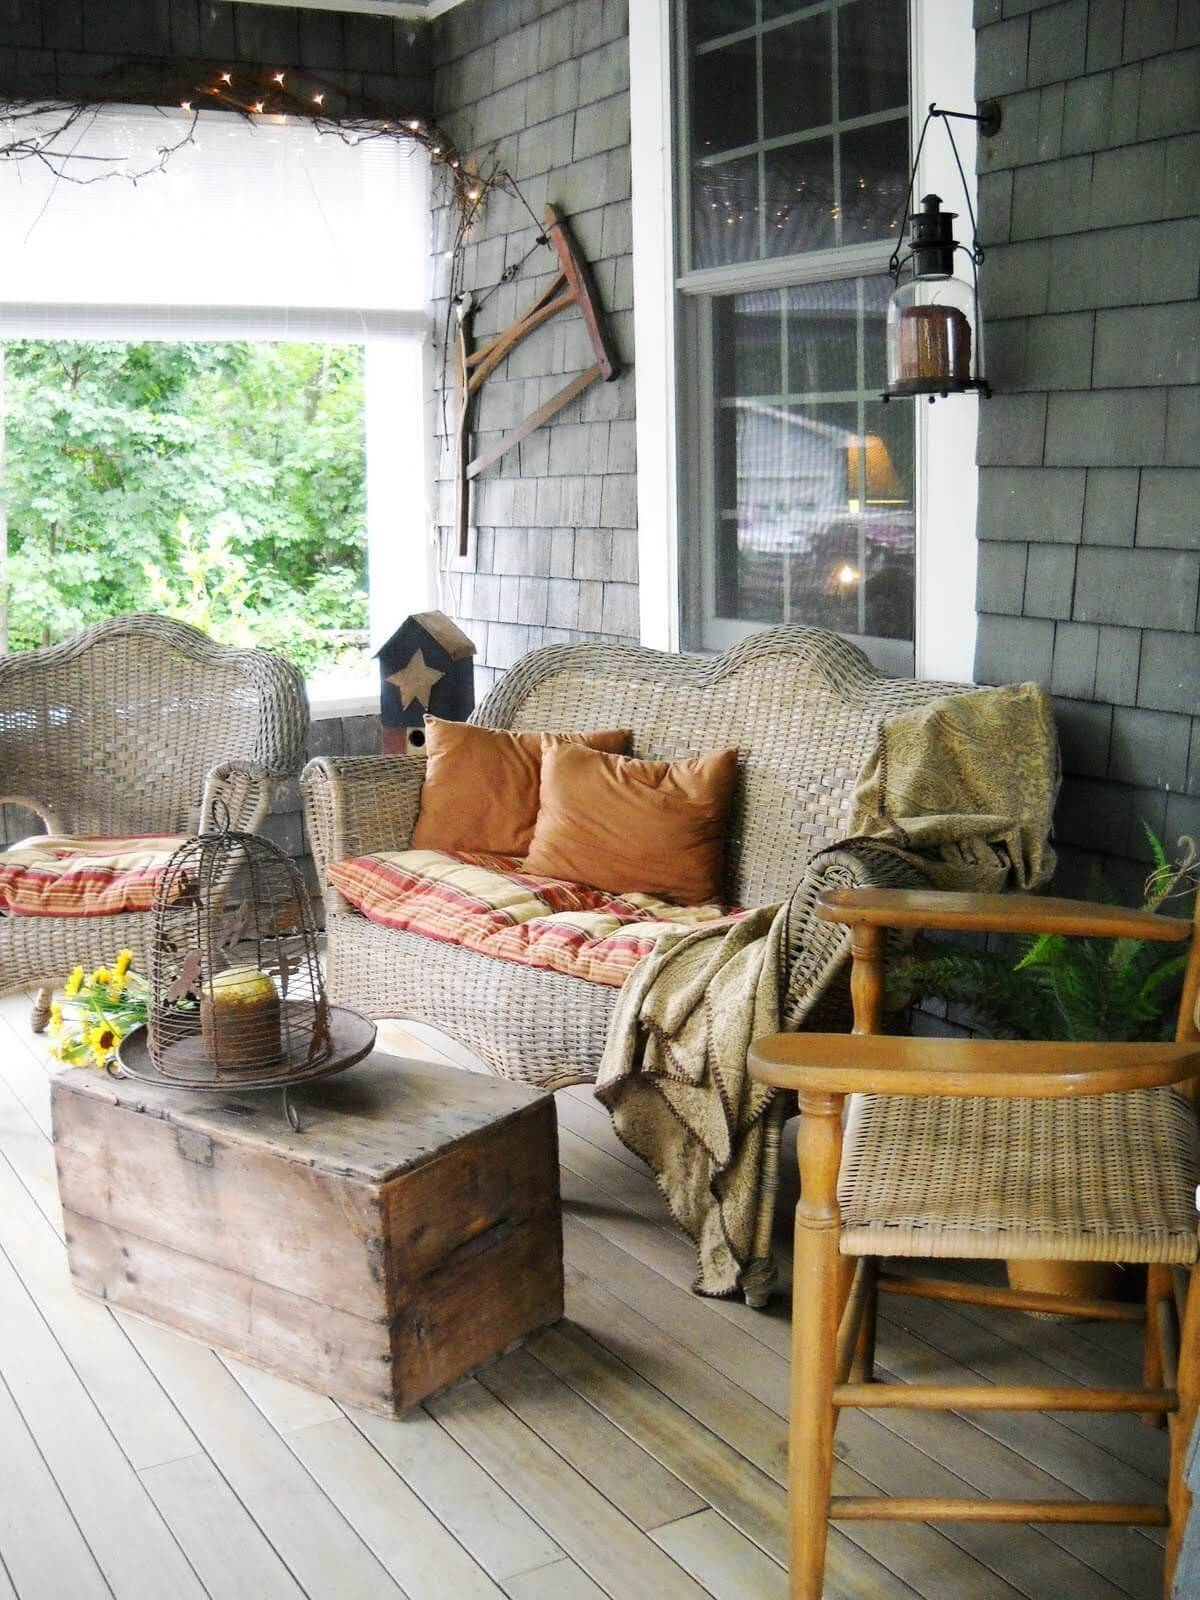 Woven Porch Furnishing and Crate Table